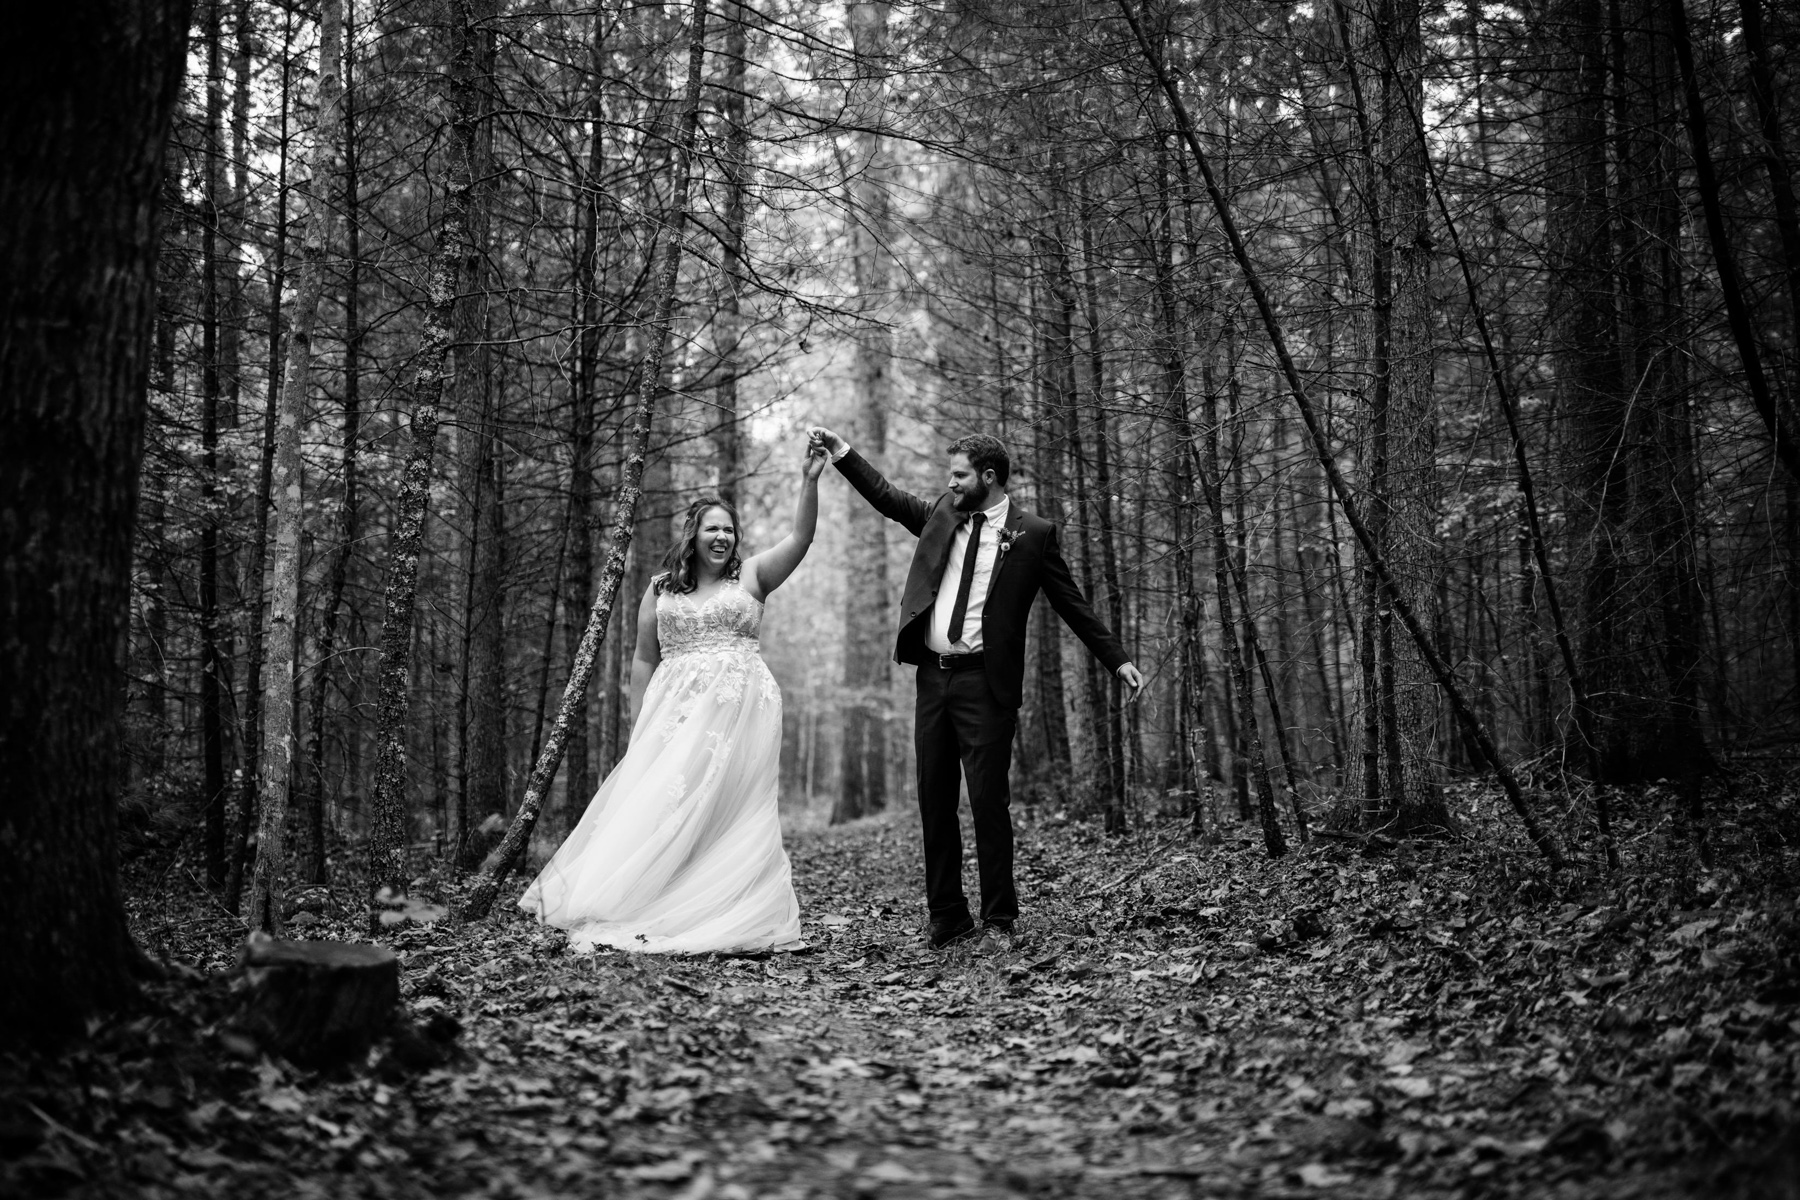 groom spins bride in forest